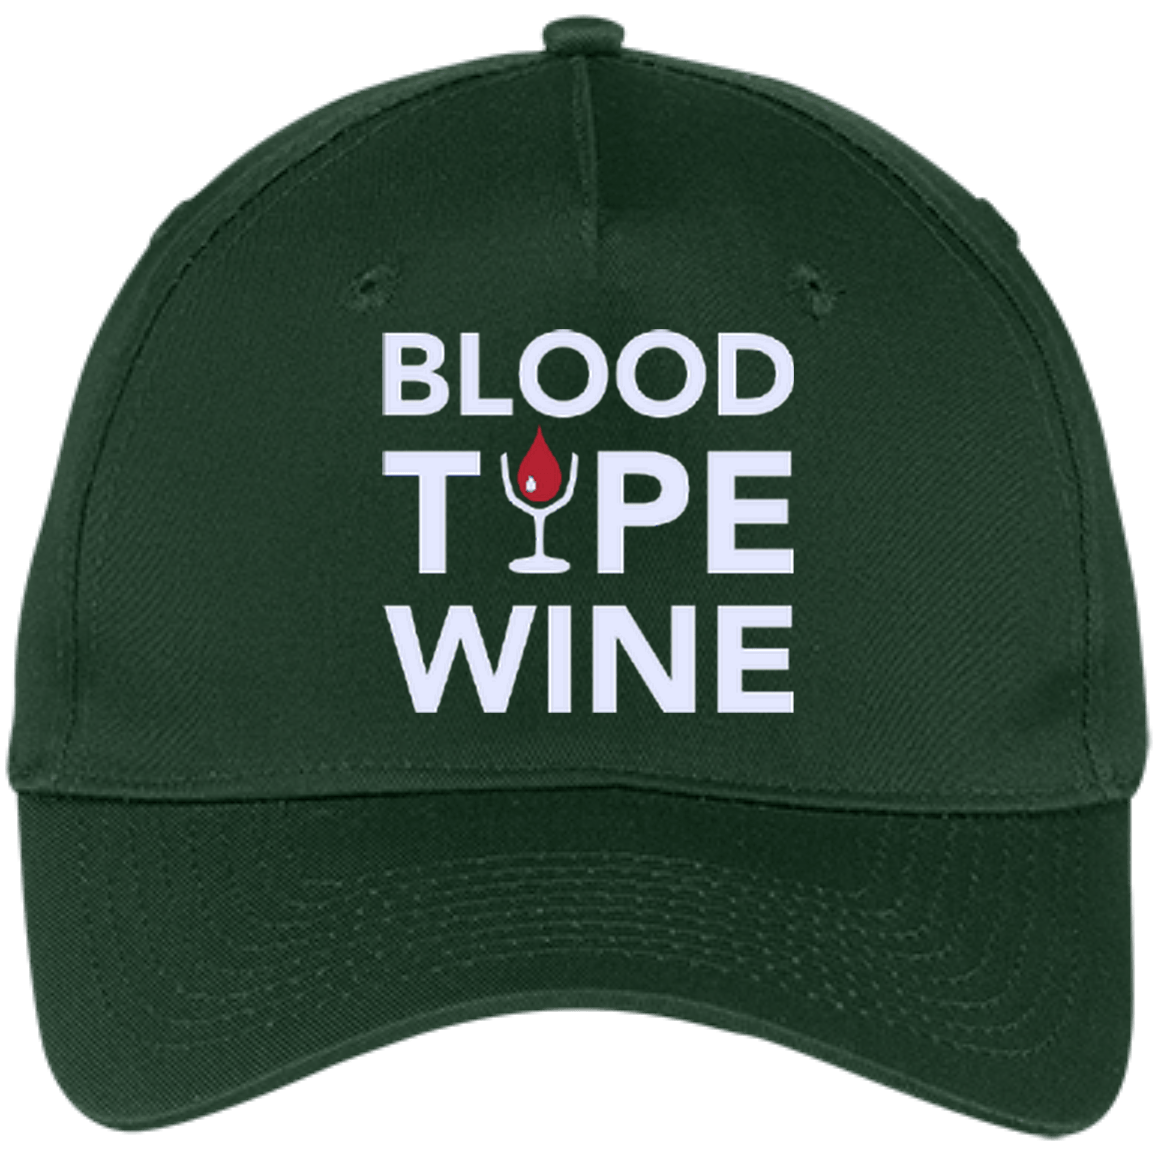 Blood Type Wine - Twill Cap